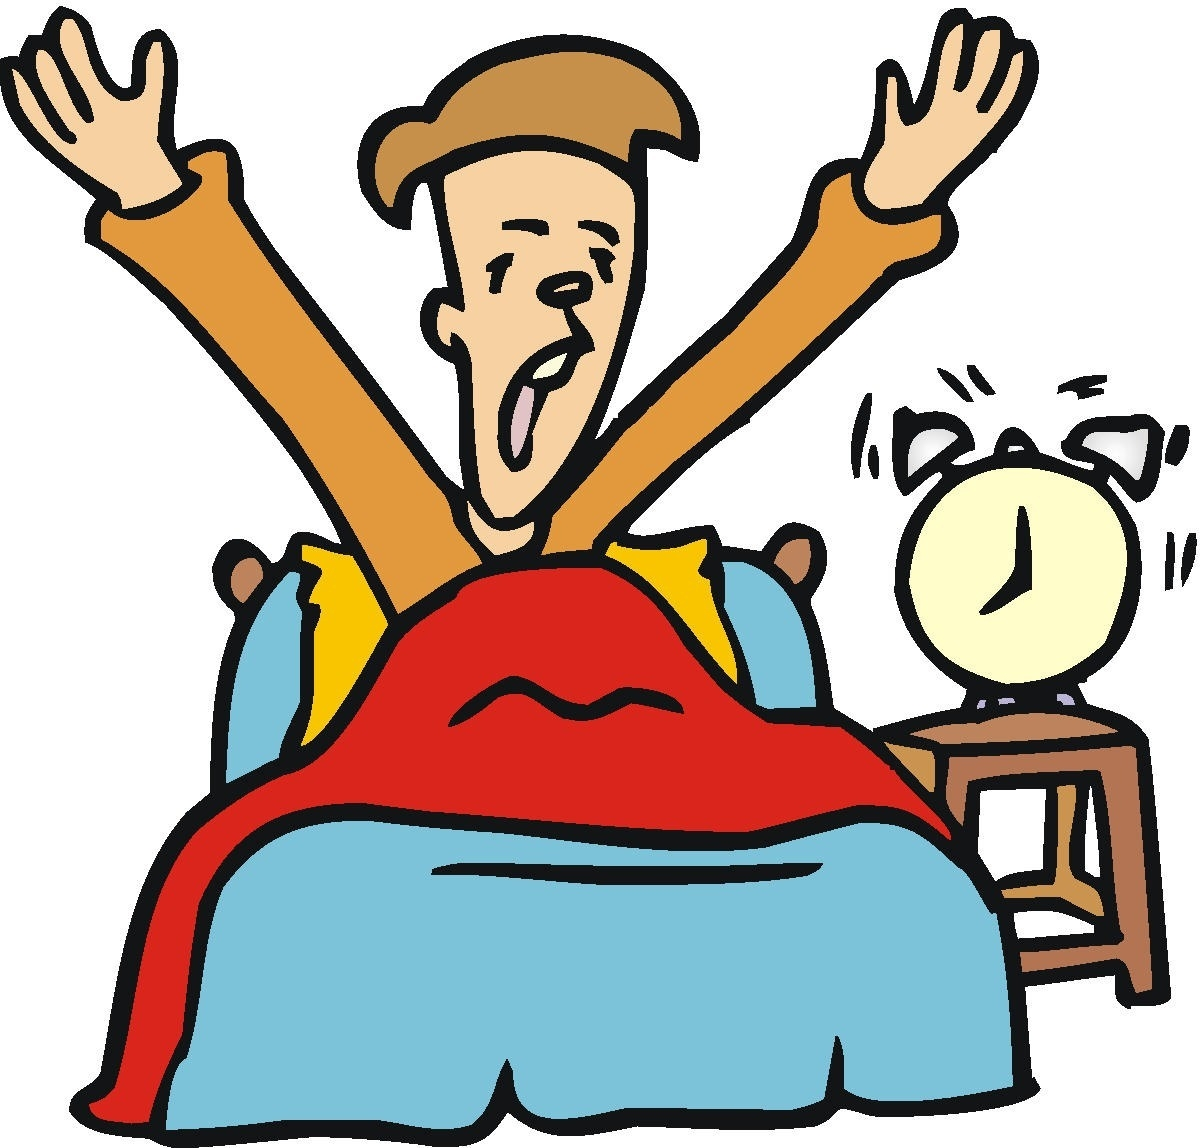 Waking up in bed clipart vector freeuse stock Waking Up In Bed Clipart pertaining to Boy Getting Out Of ... vector freeuse stock